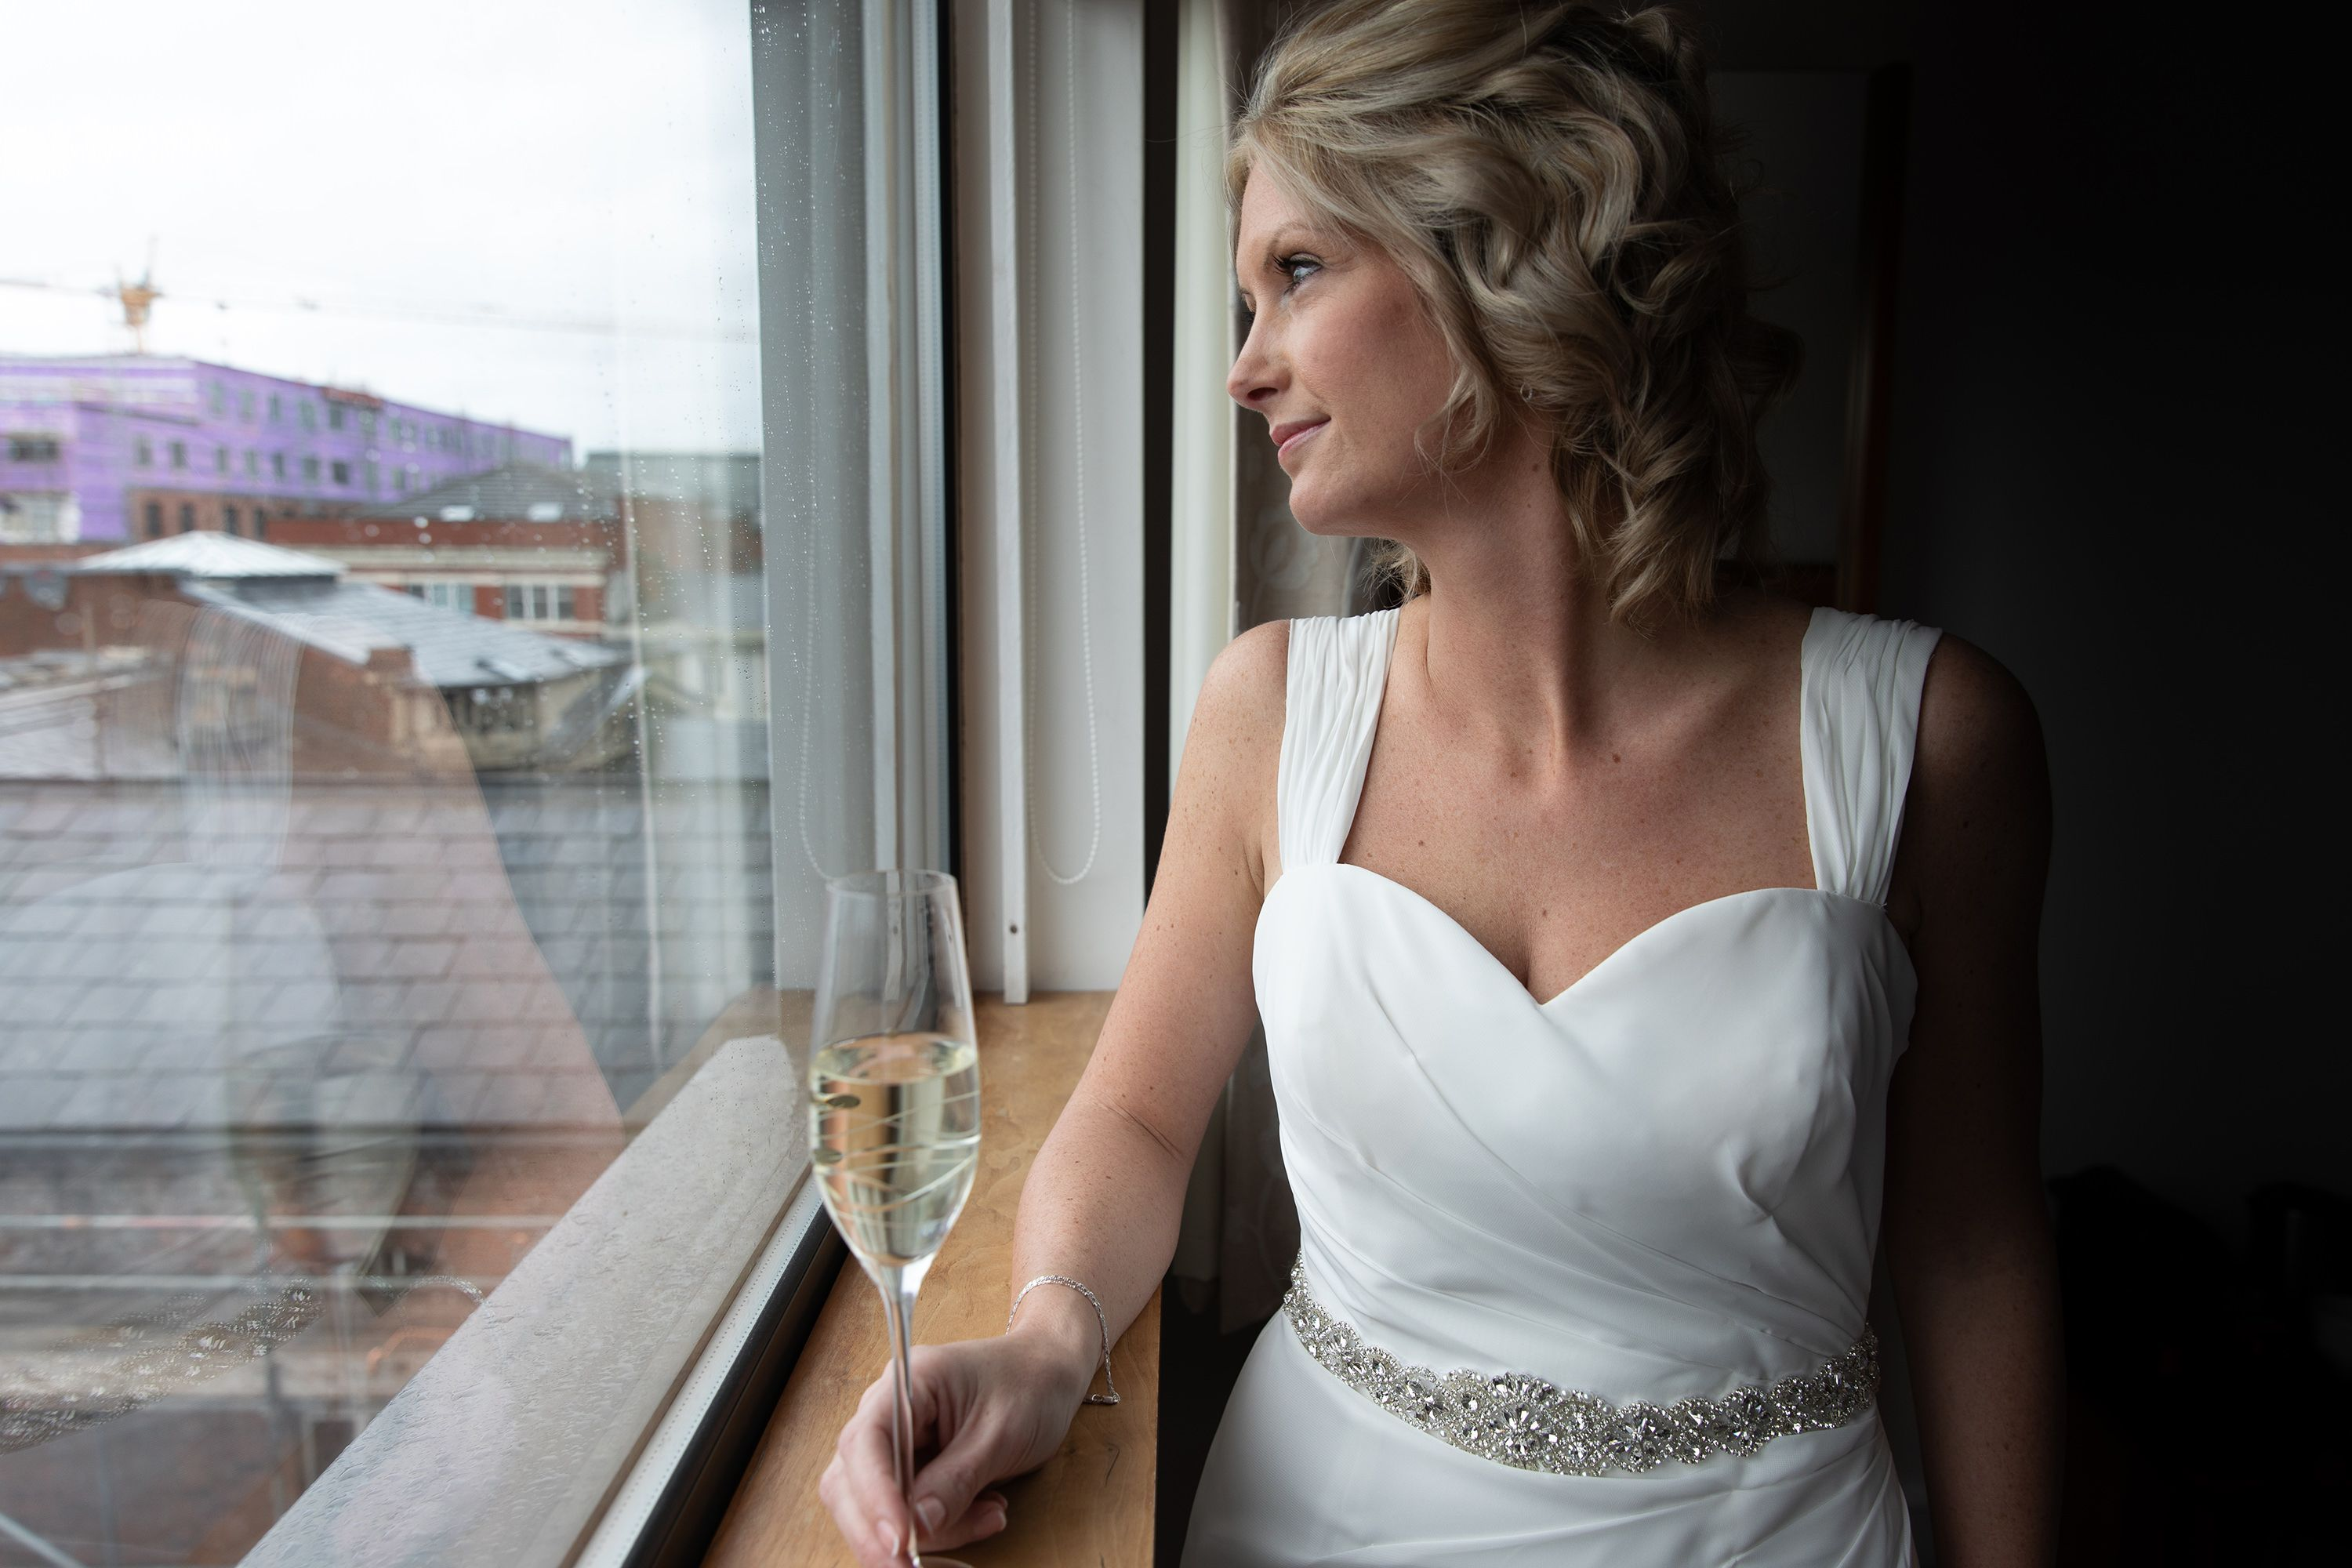 the bride looking out of the window gathering her thoughts